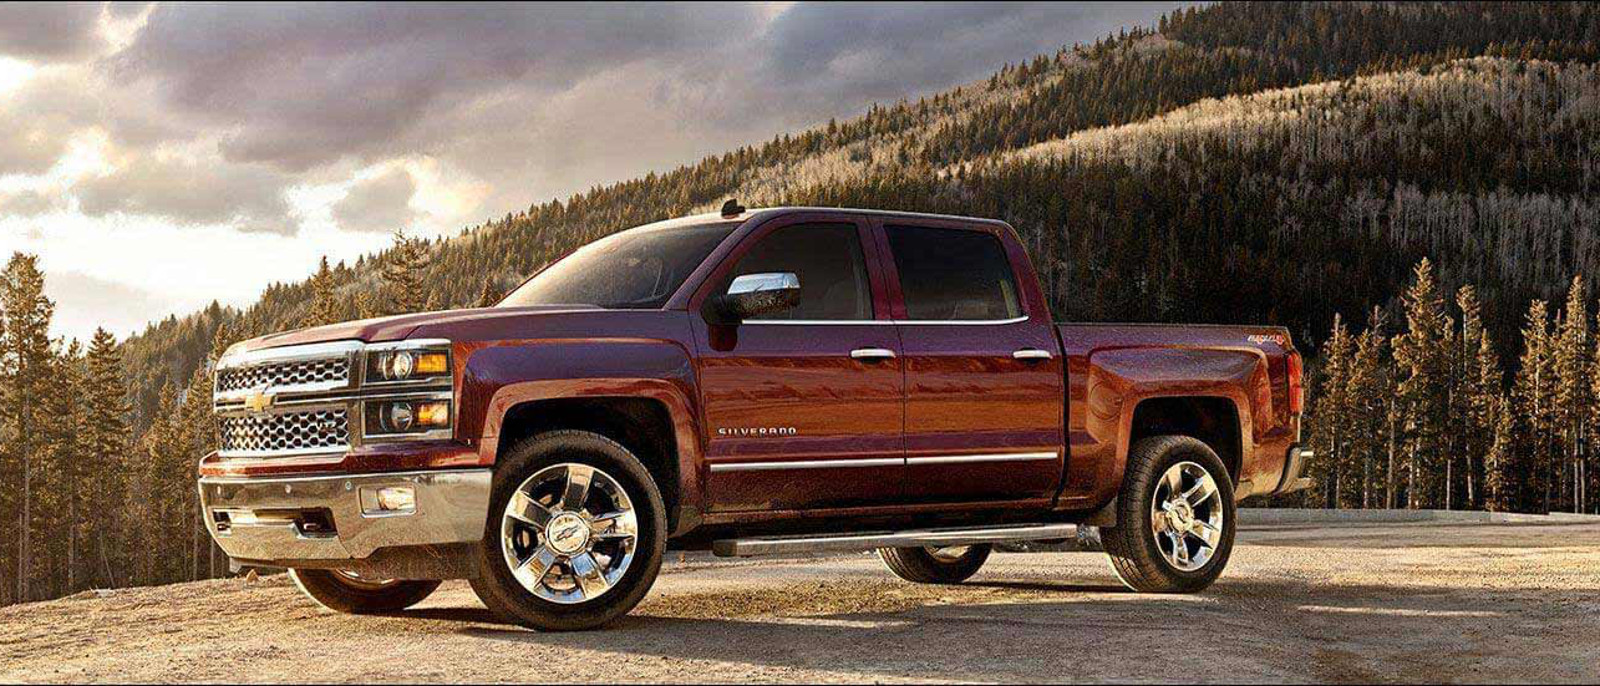 2015 chevy silverado 1500 florence cincinnati. Black Bedroom Furniture Sets. Home Design Ideas